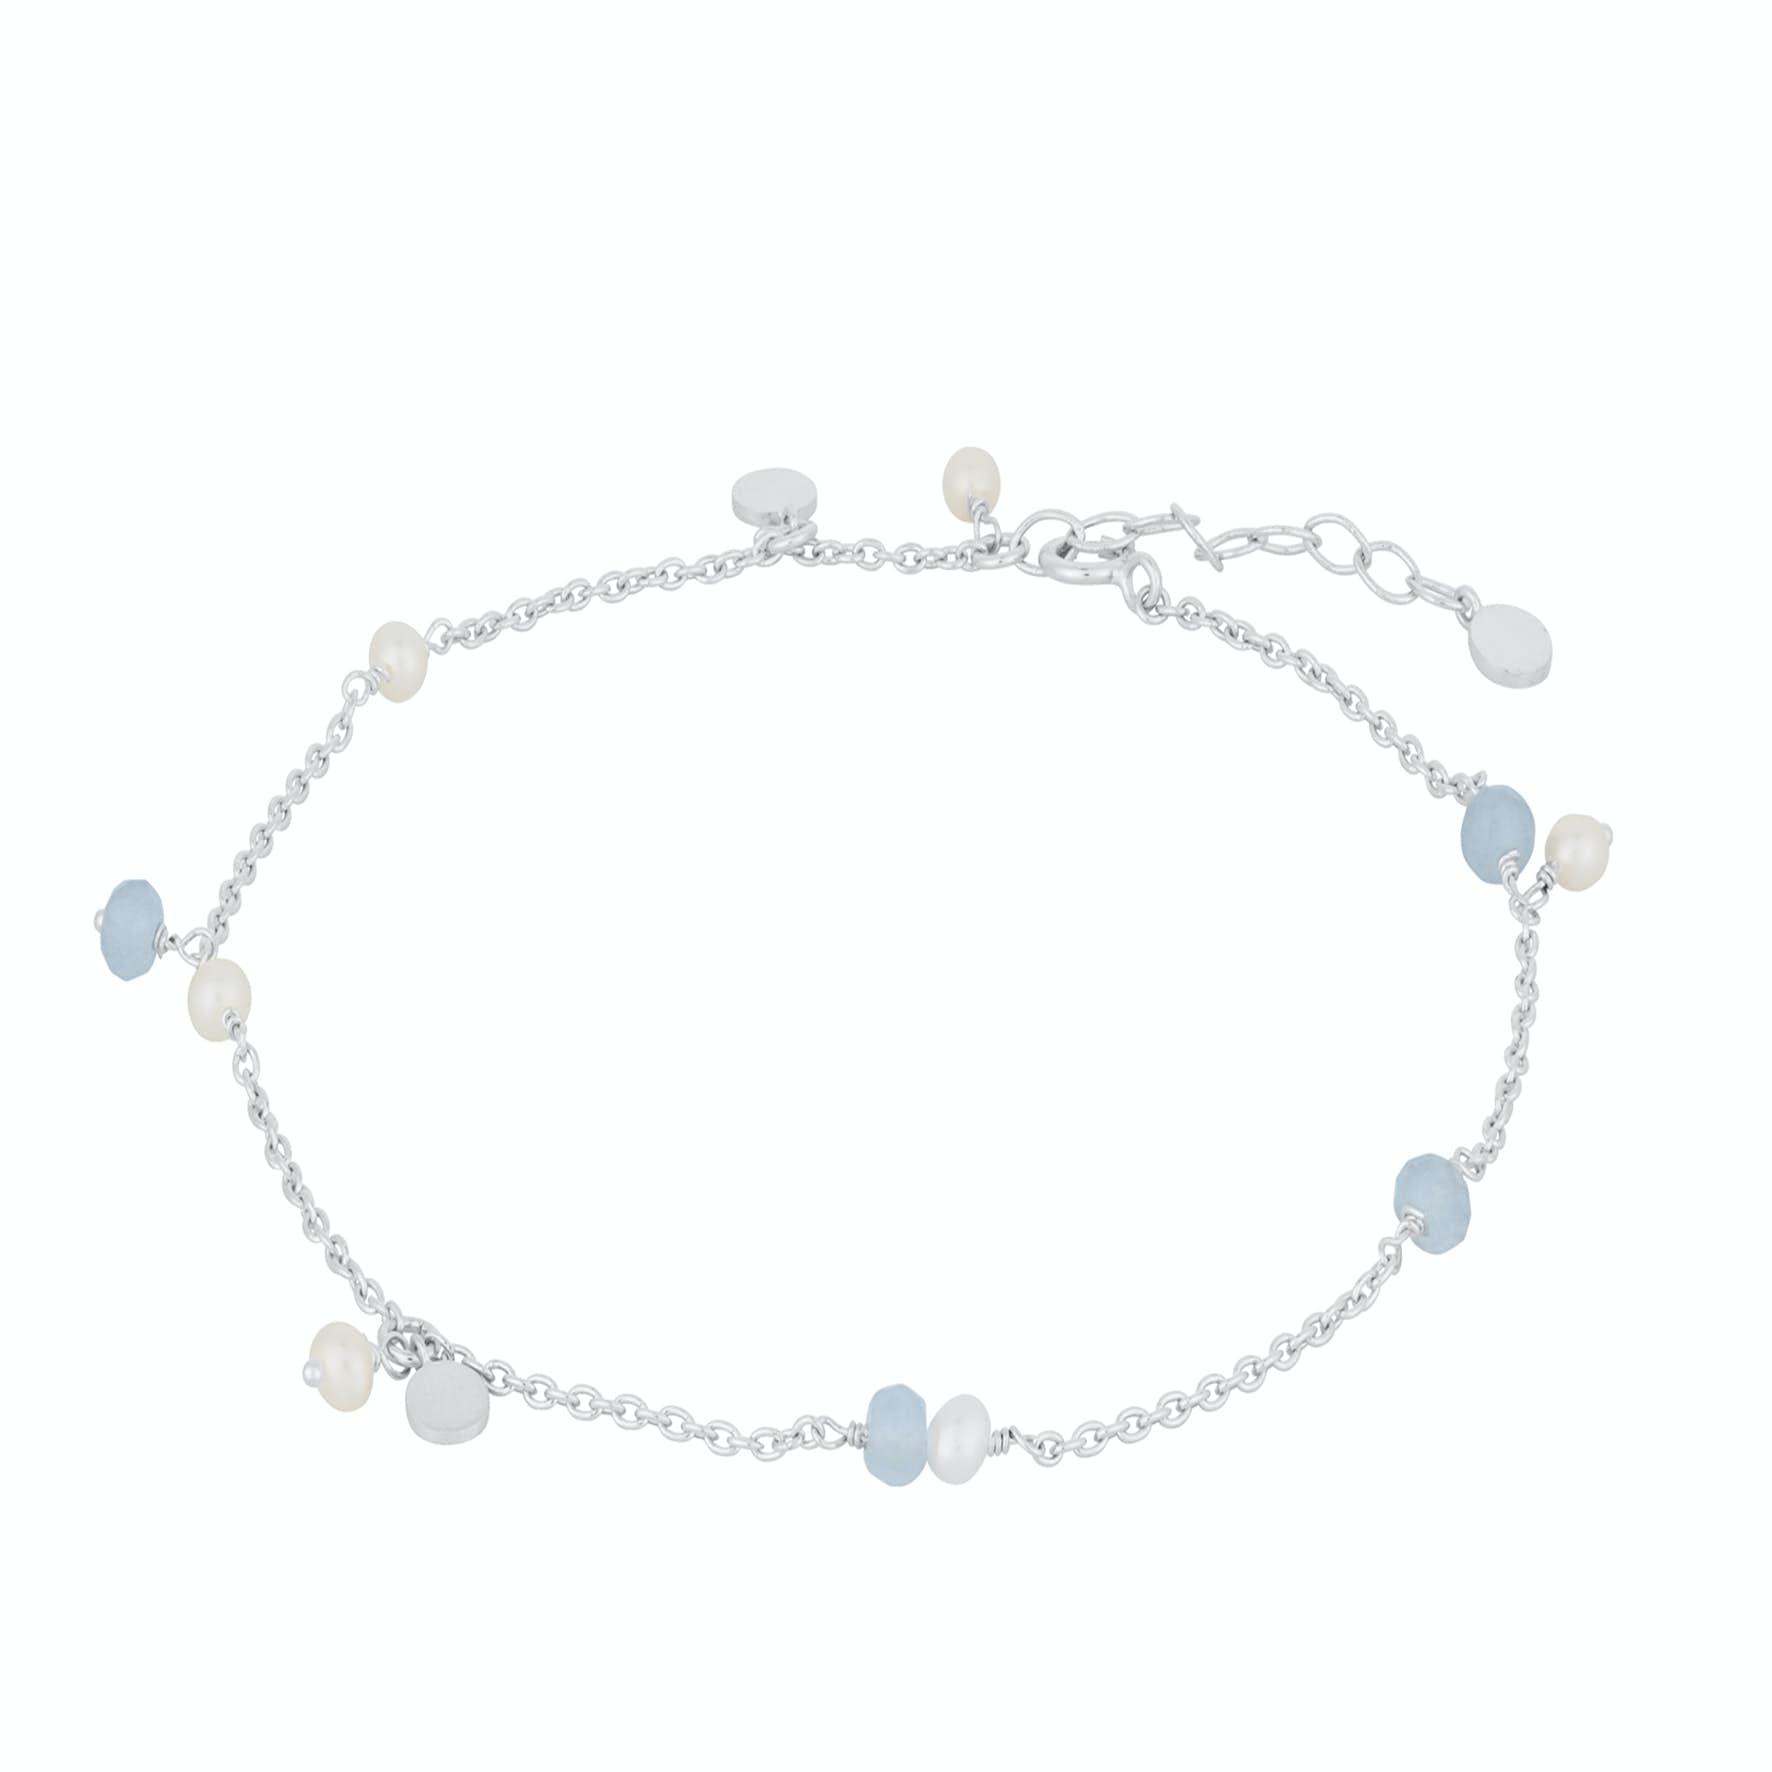 Afterglow Sea Anklet von Pernille Corydon in Silber Sterling 925